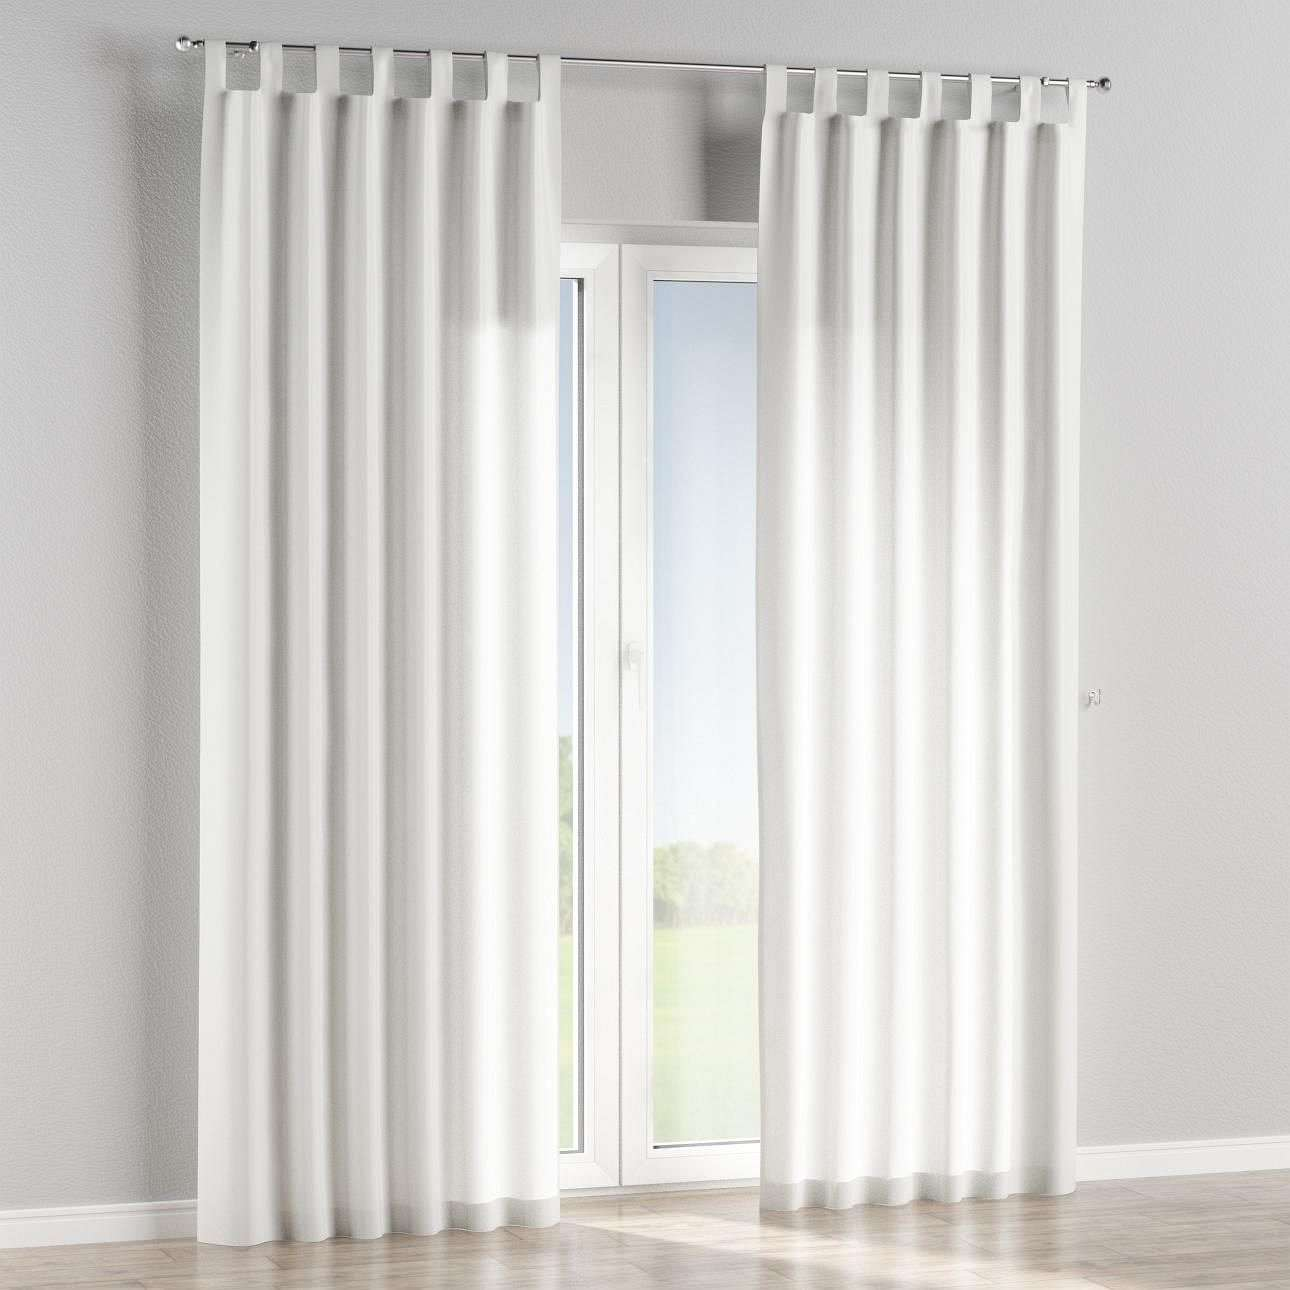 Tab top curtains in collection Marina, fabric: 140-13